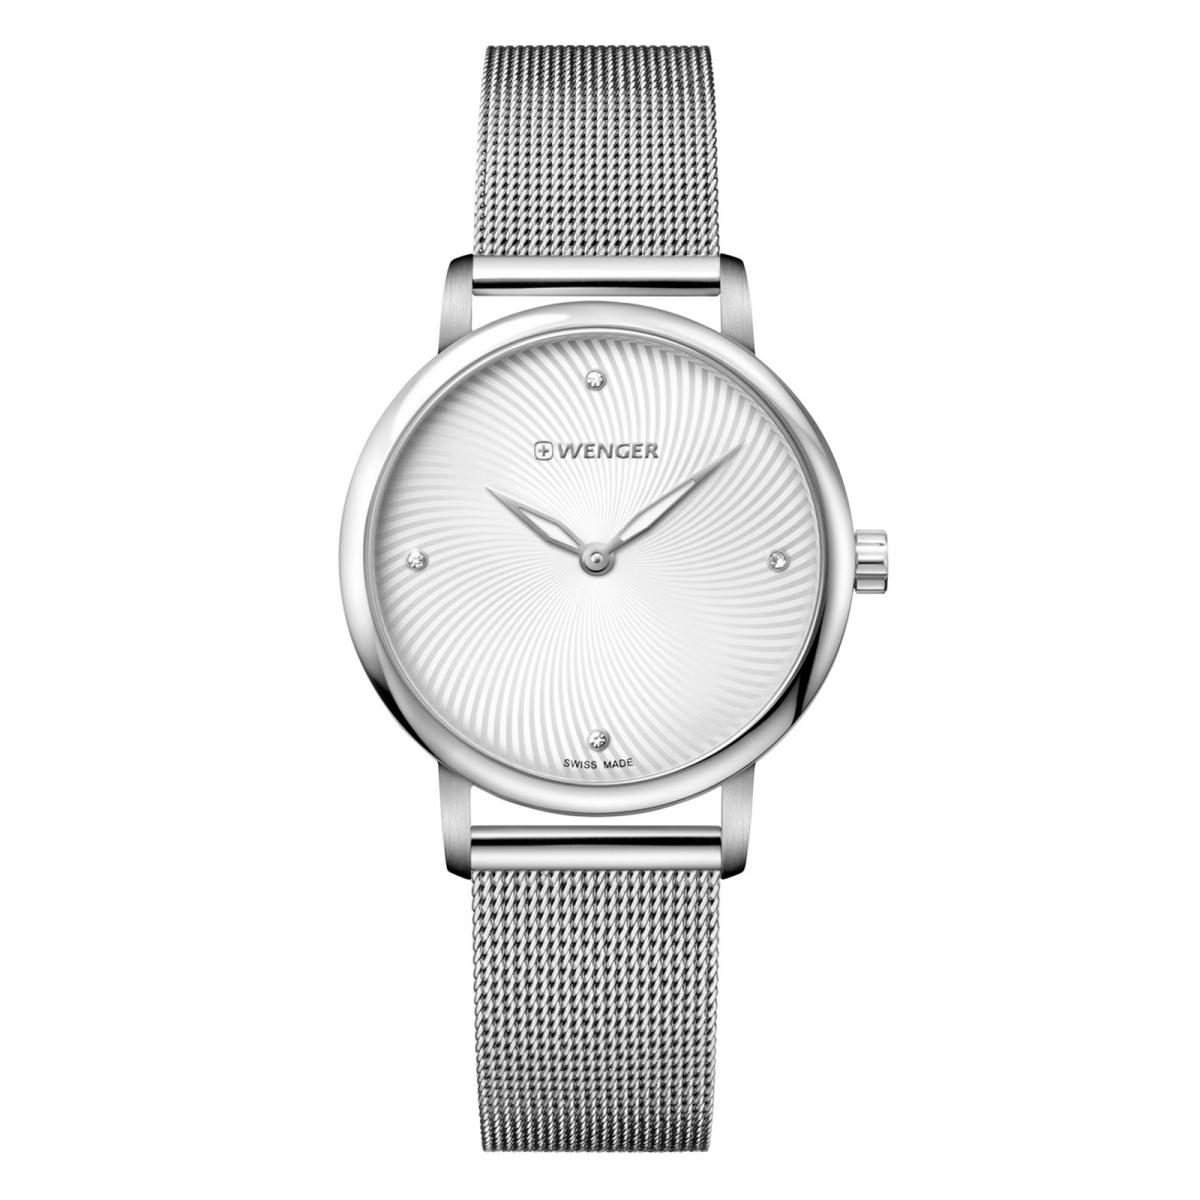 28db3221c4d6 Reloj Wenger - 01.1721.107 - Mujer - Time Square